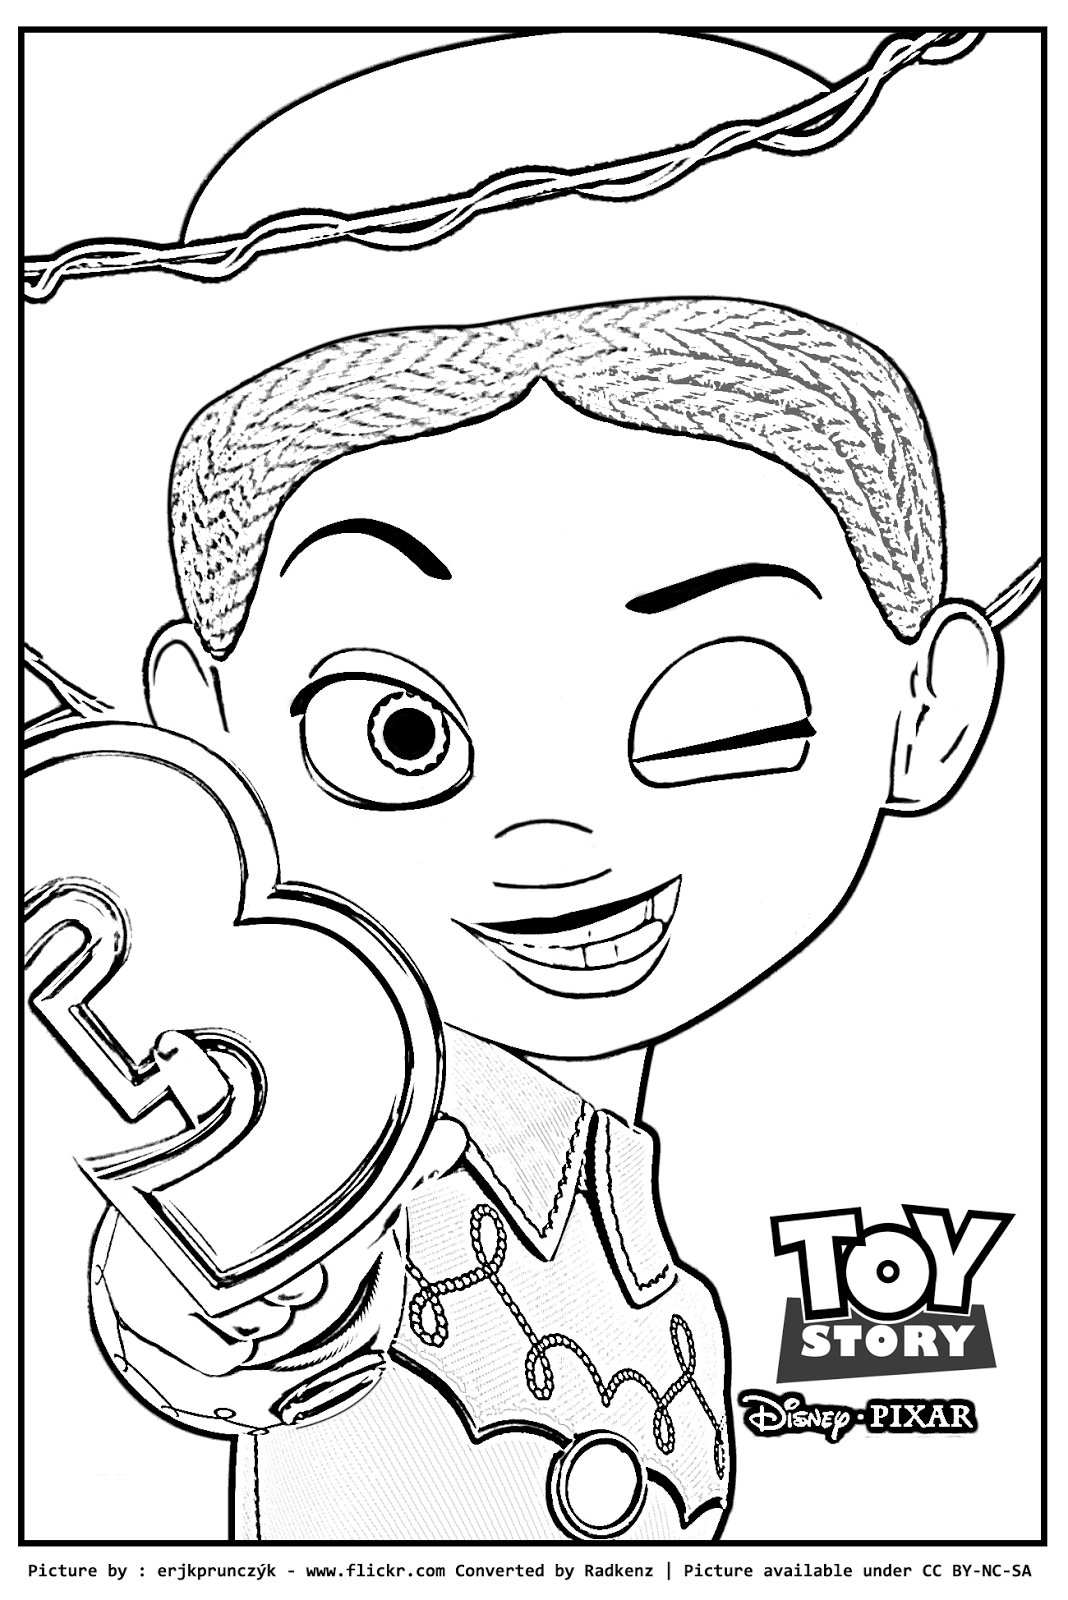 Jessie Toy Story 3 Coloring Pages